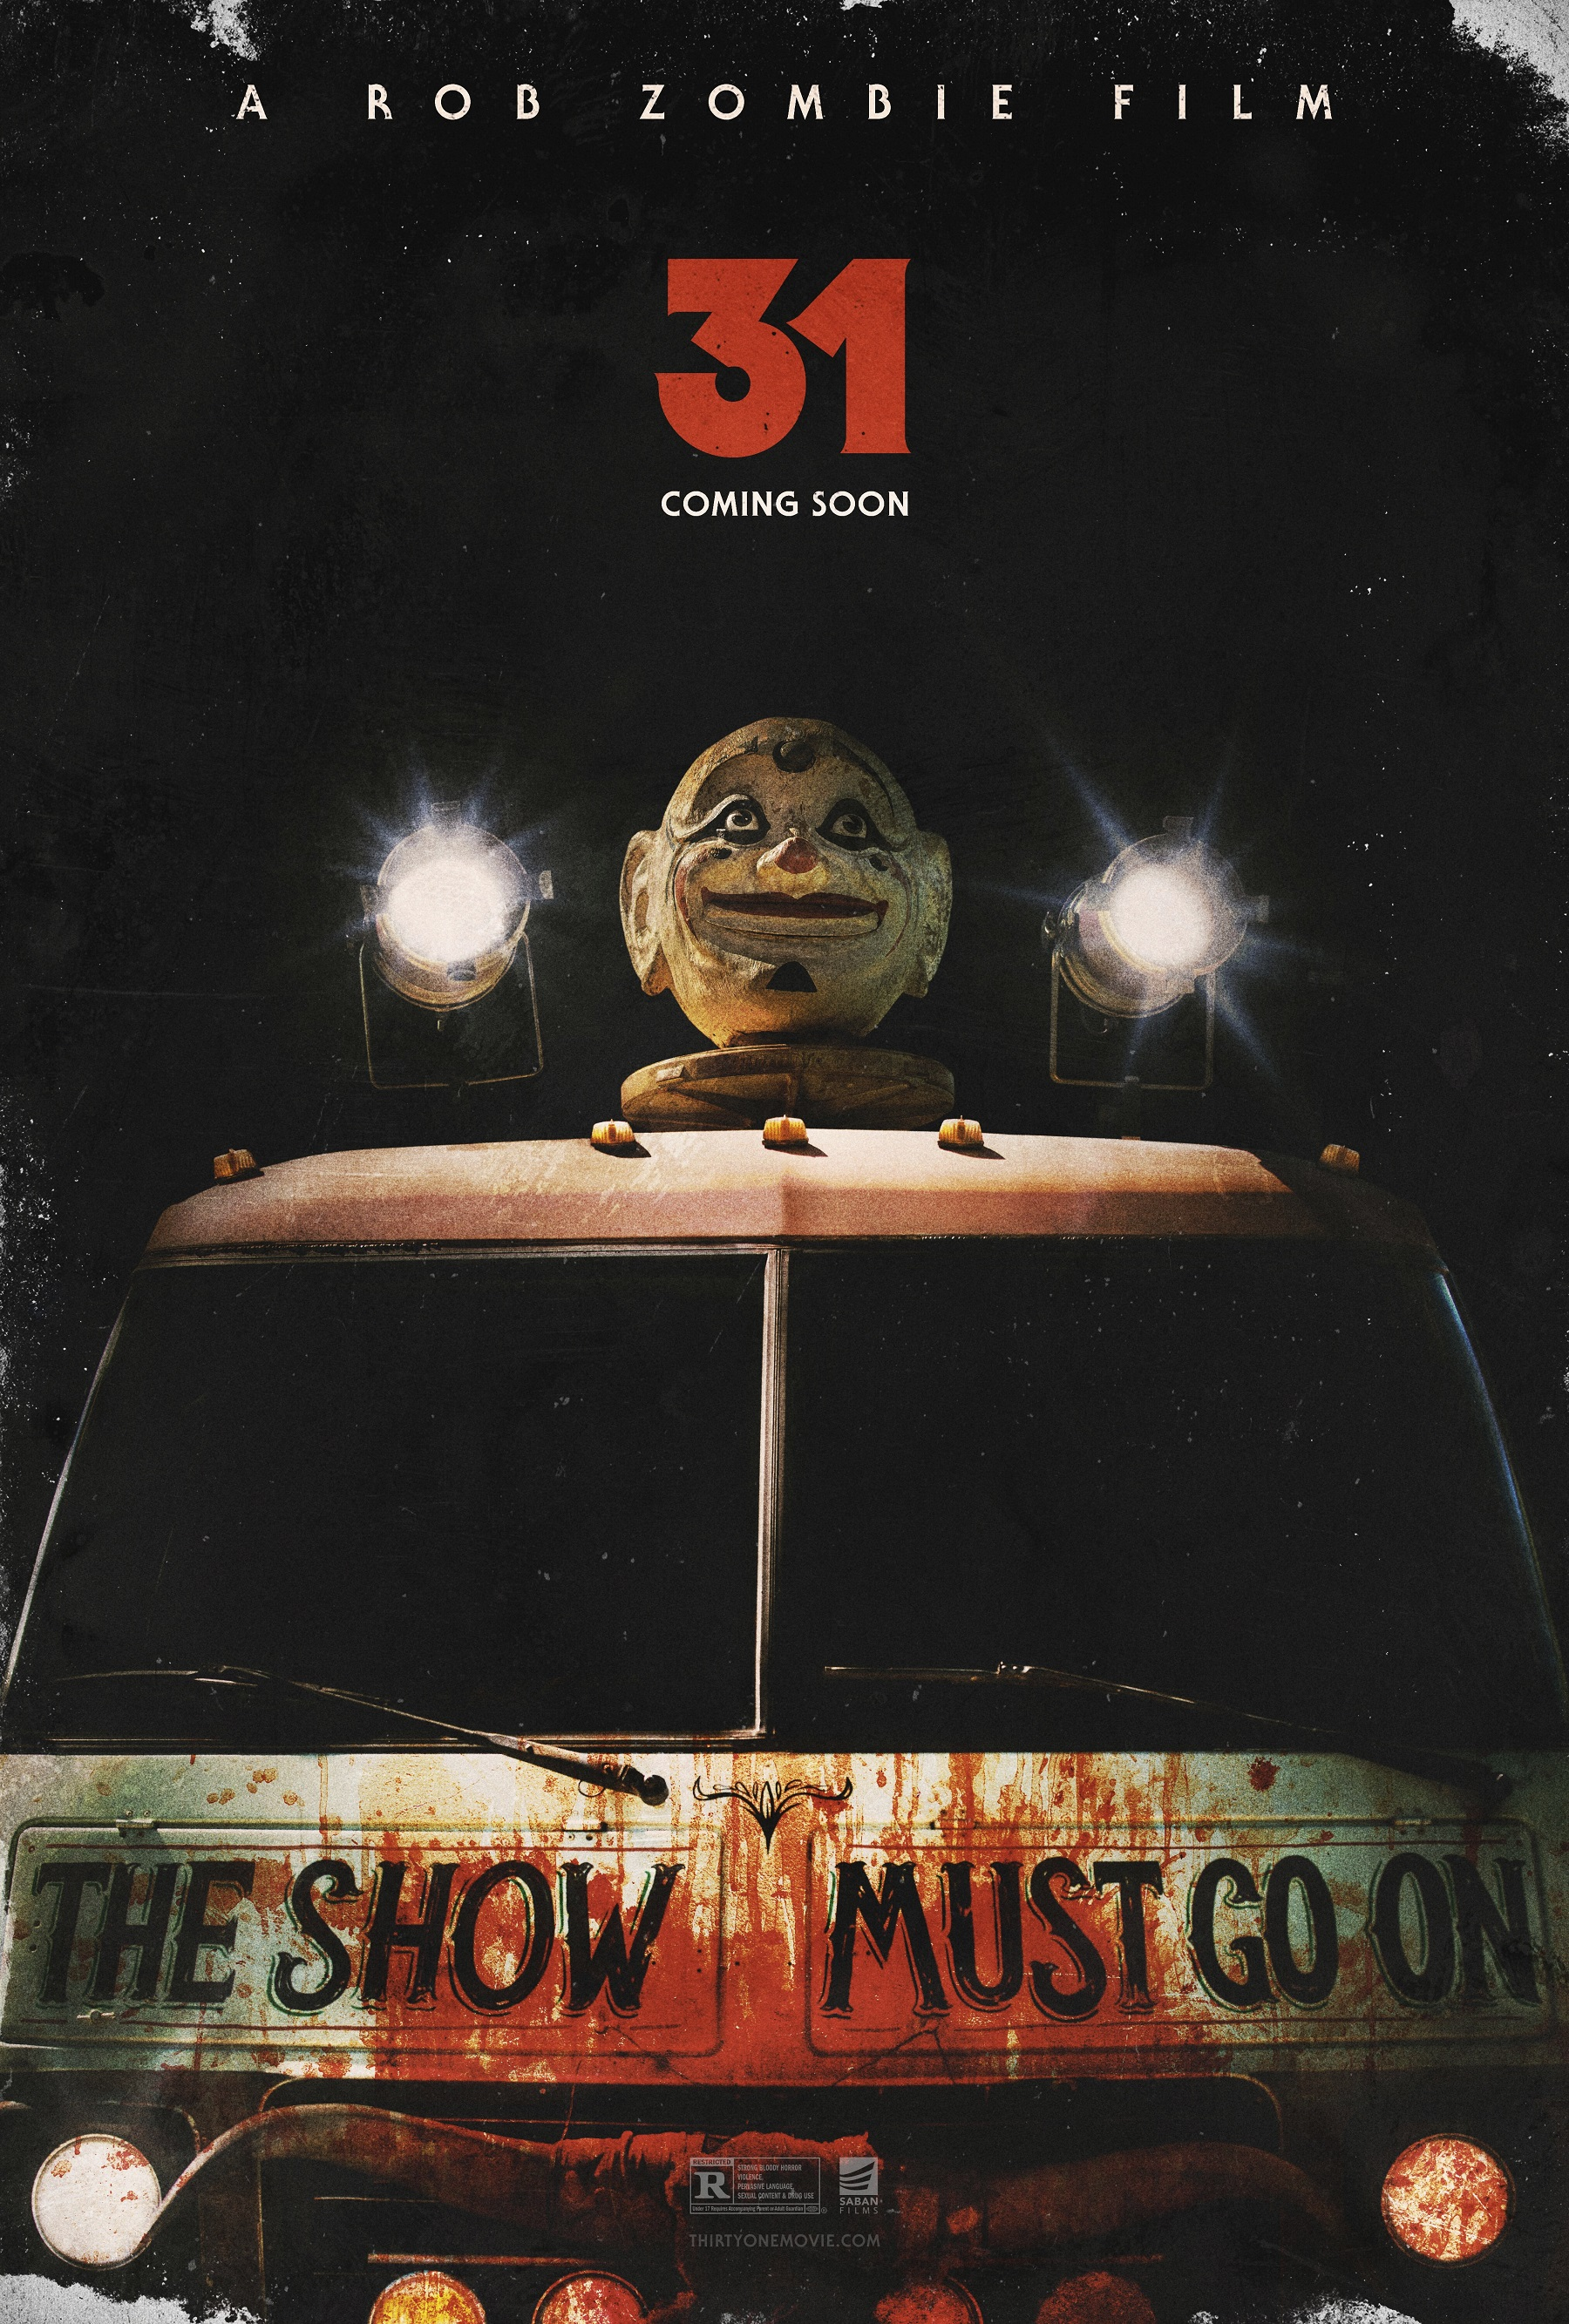 31 cposter gallery 31 trailers Rob Zombie posters Movies 31